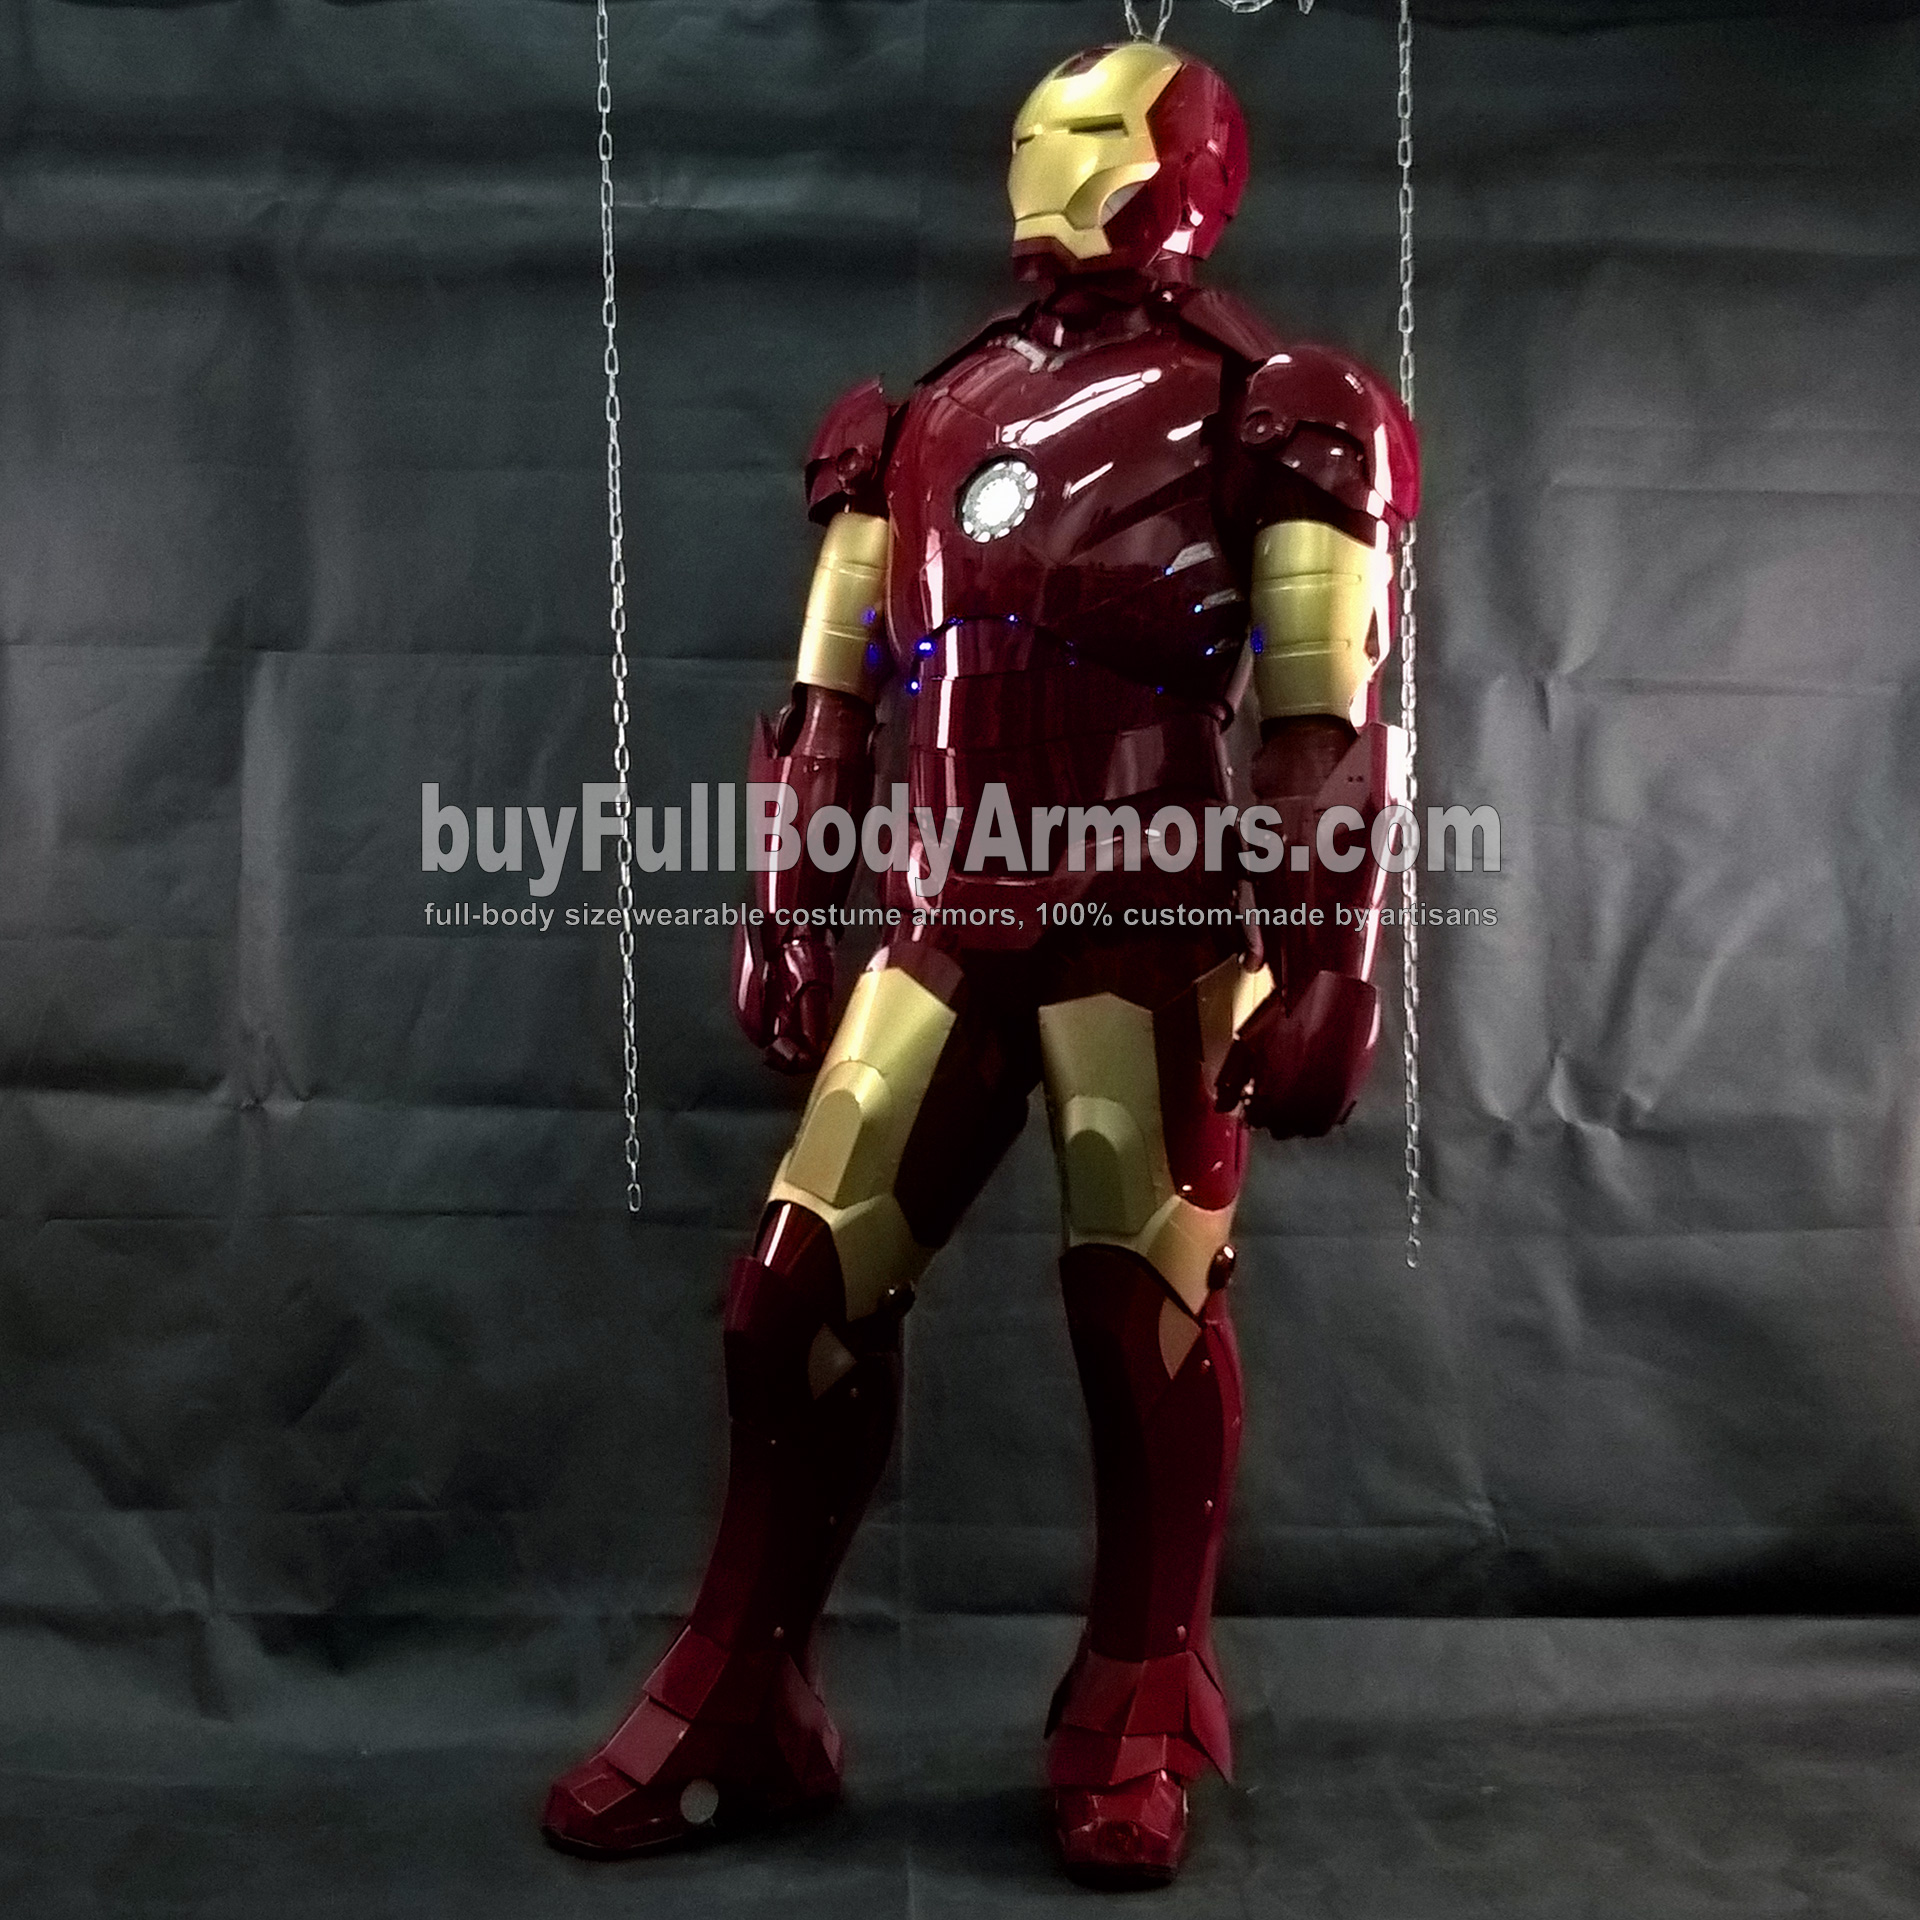 Wearing the Wearable Iron Man Suit Mark 3 III Armor Costume - Photos 3